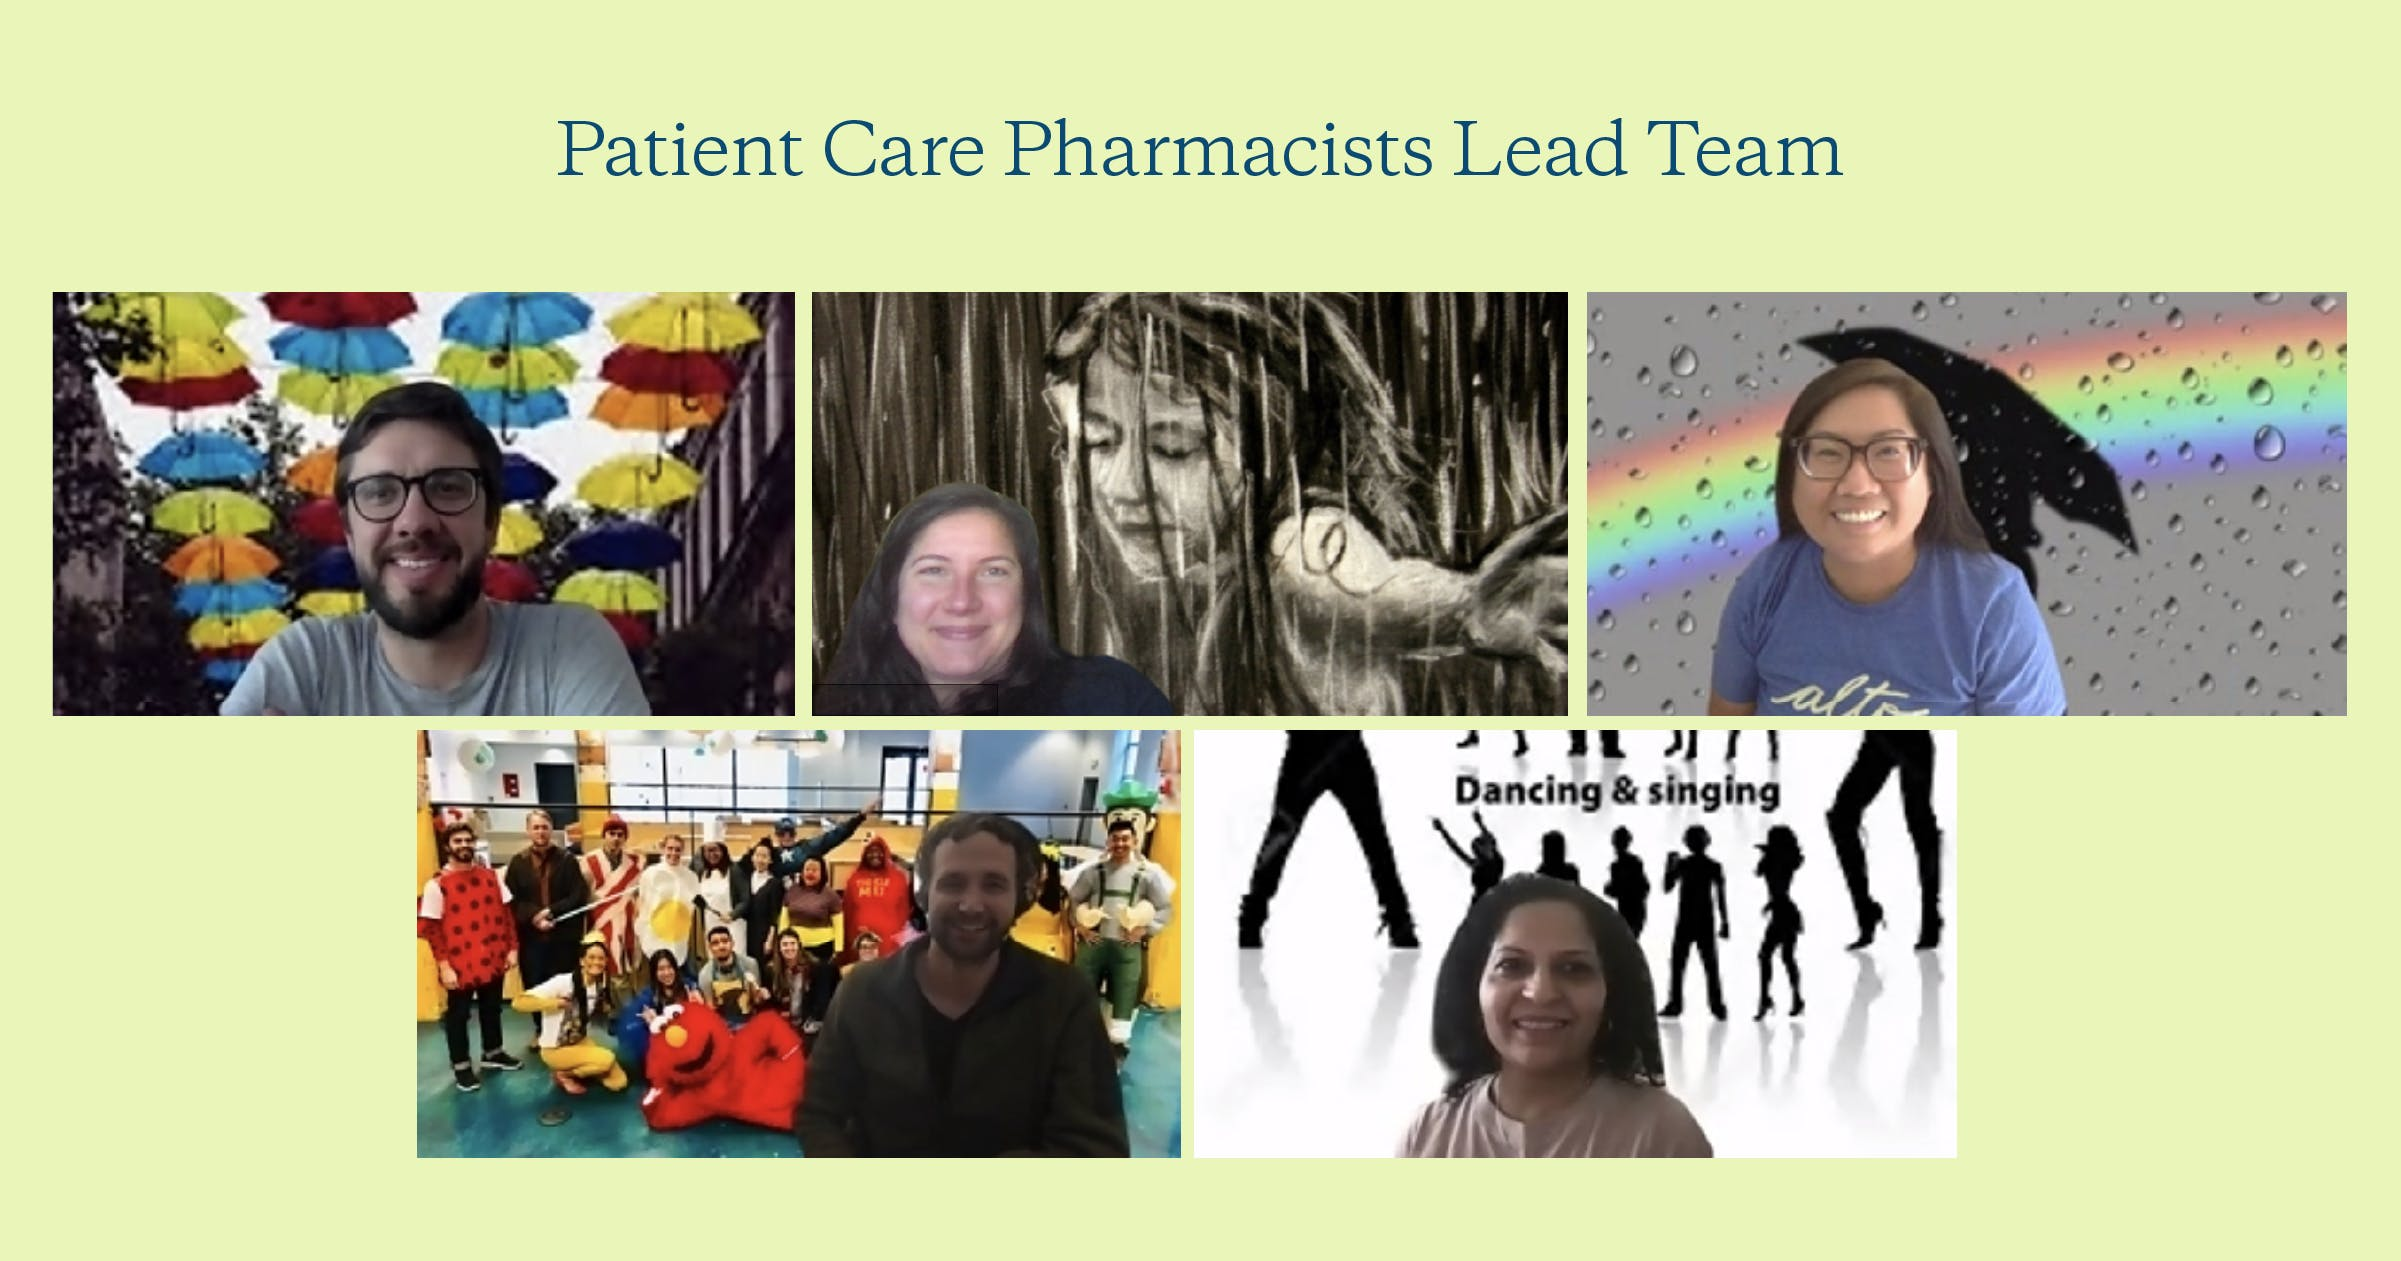 Patient Care Pharmacists Lead Team